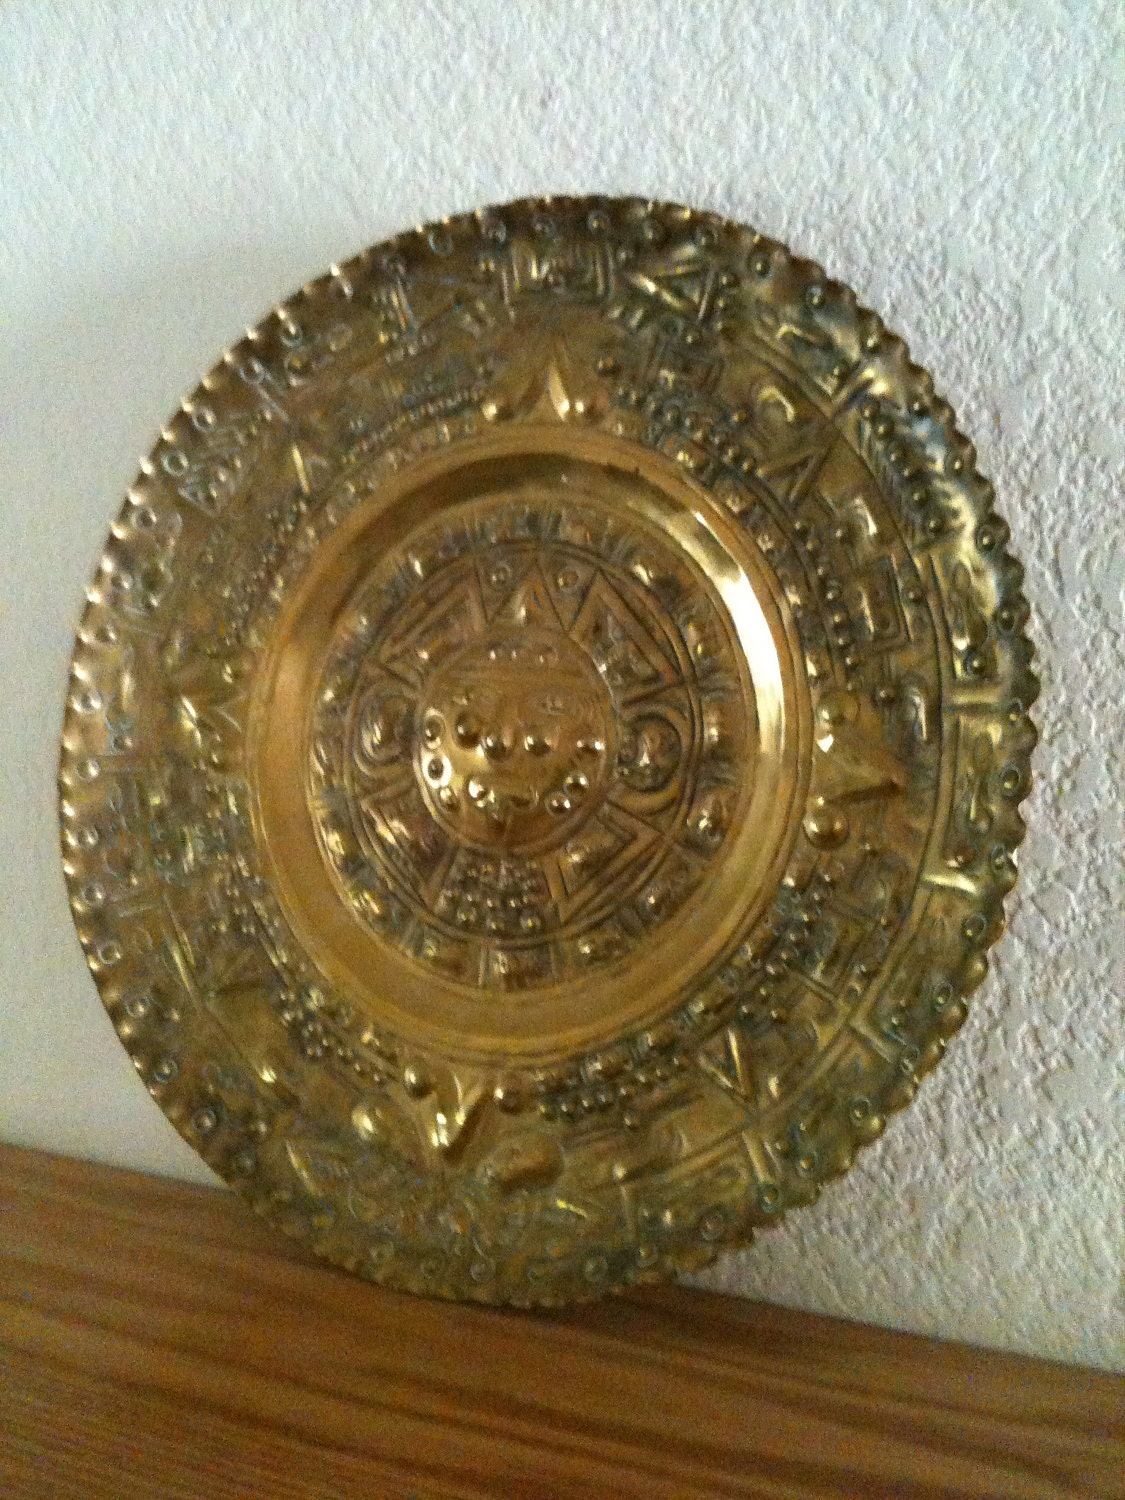 Brass Wall Plates Decor : Brass wall decor zodiac plate vintage large hanging